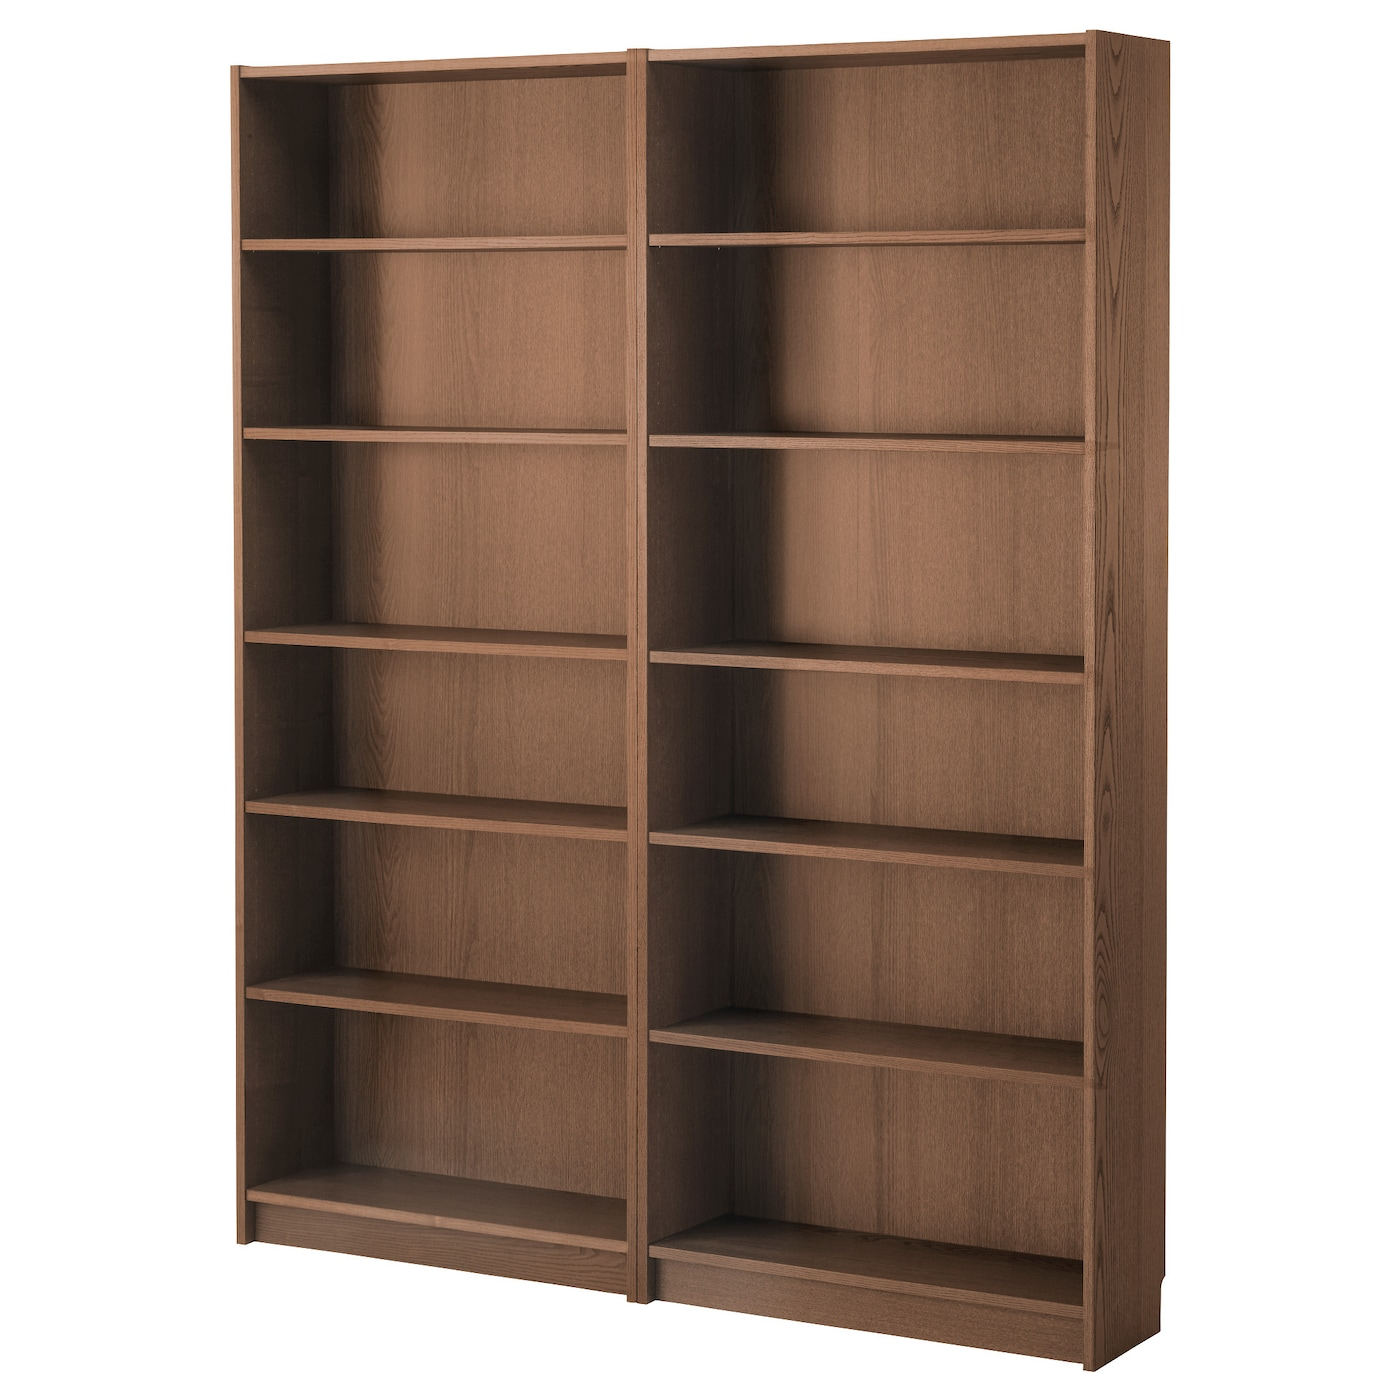 billy bookcase brown ash veneer 160x202x28 cm ikea. Black Bedroom Furniture Sets. Home Design Ideas